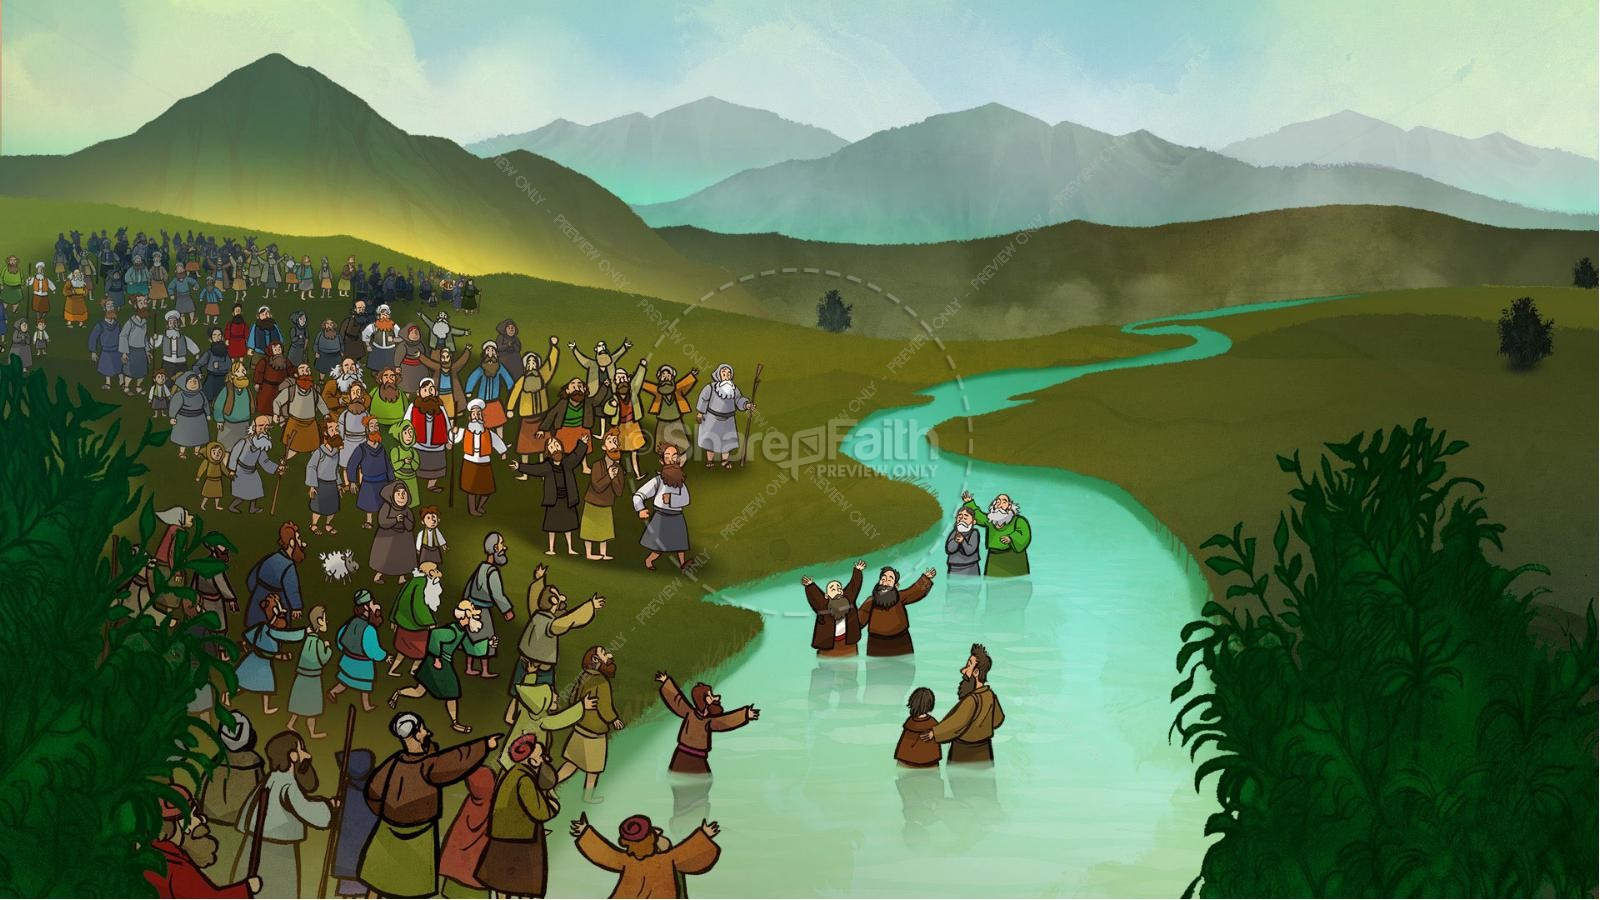 Acts 2 The Holy Spirit Comes Kids Bible Story | slide 8